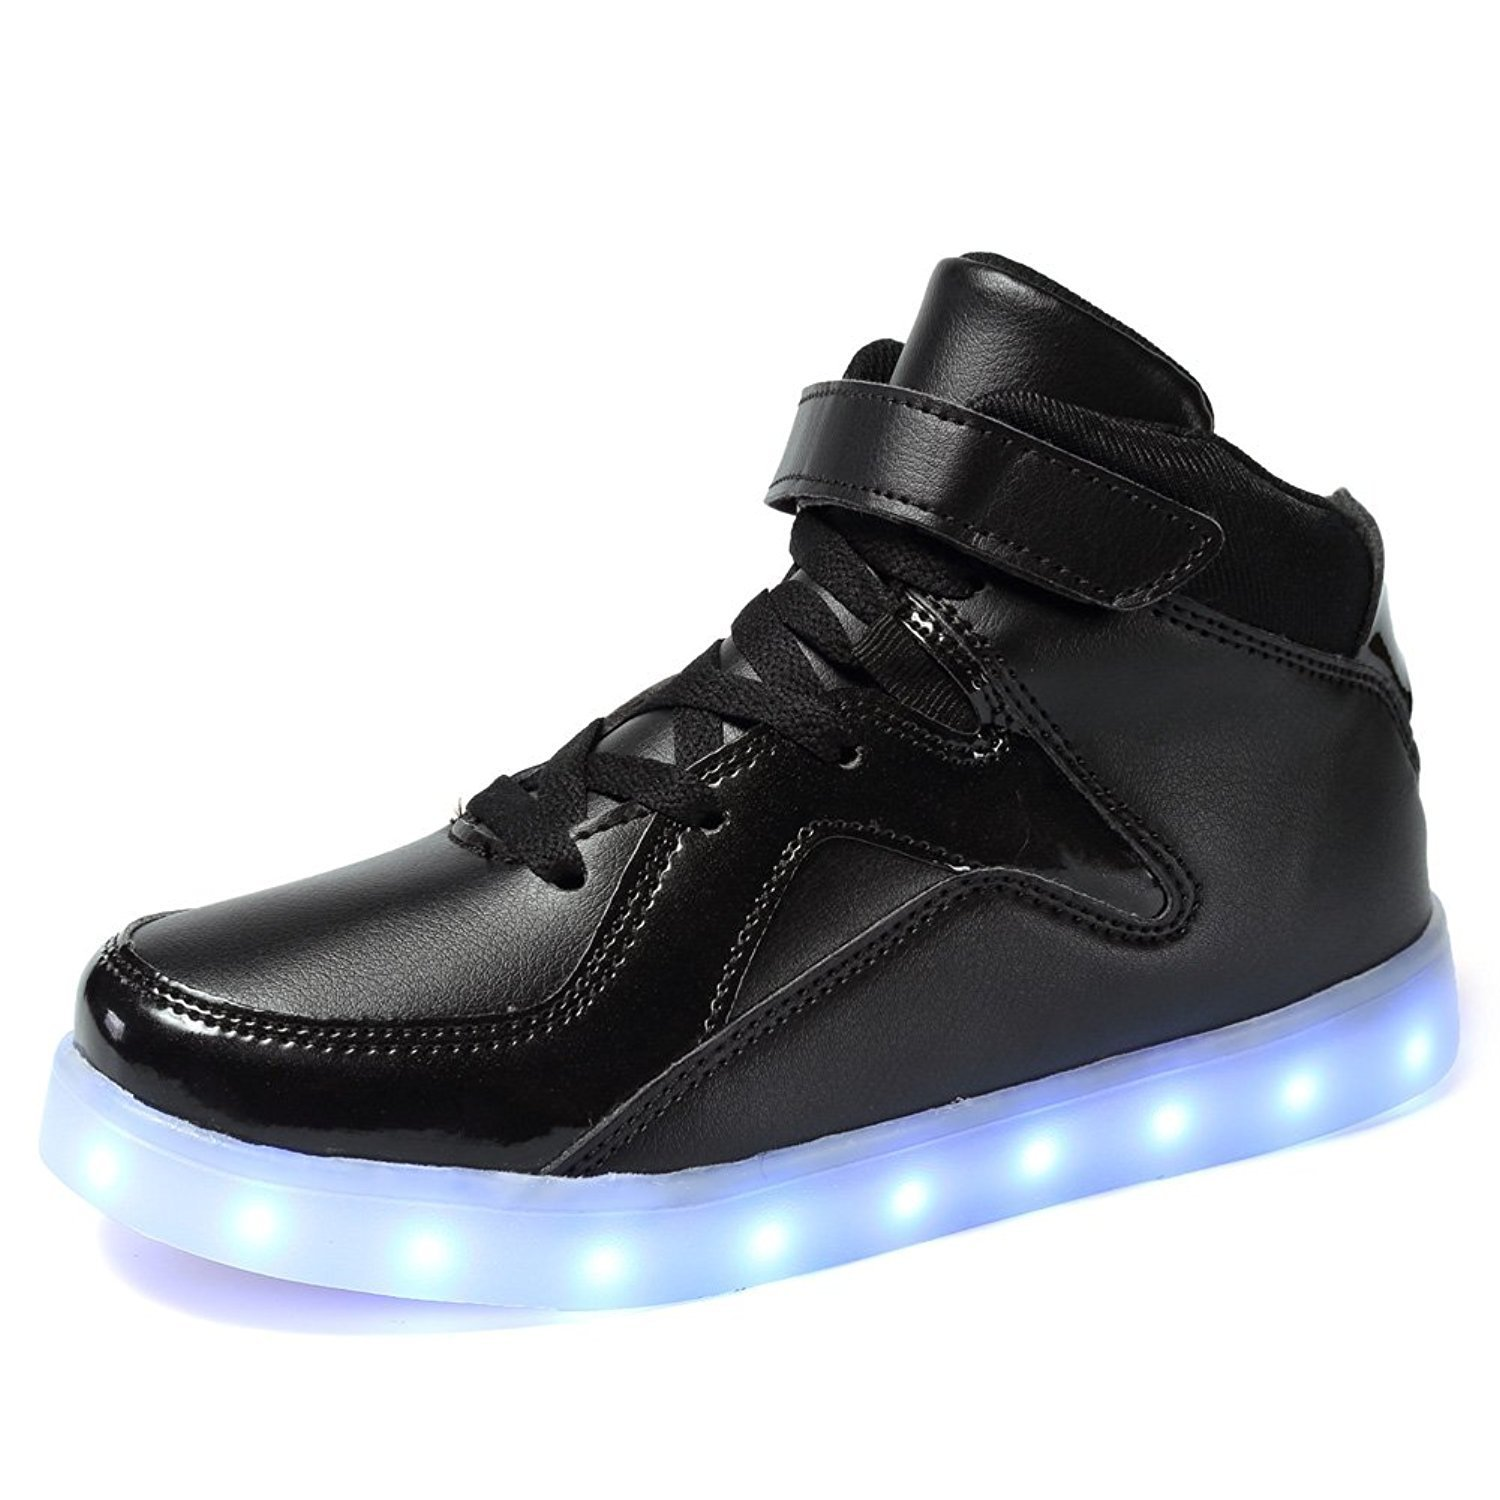 TUTUYU Kids 11 Colors LED Light Up Shoes High Top Fashion Flashing Sneakers Bright Black 38